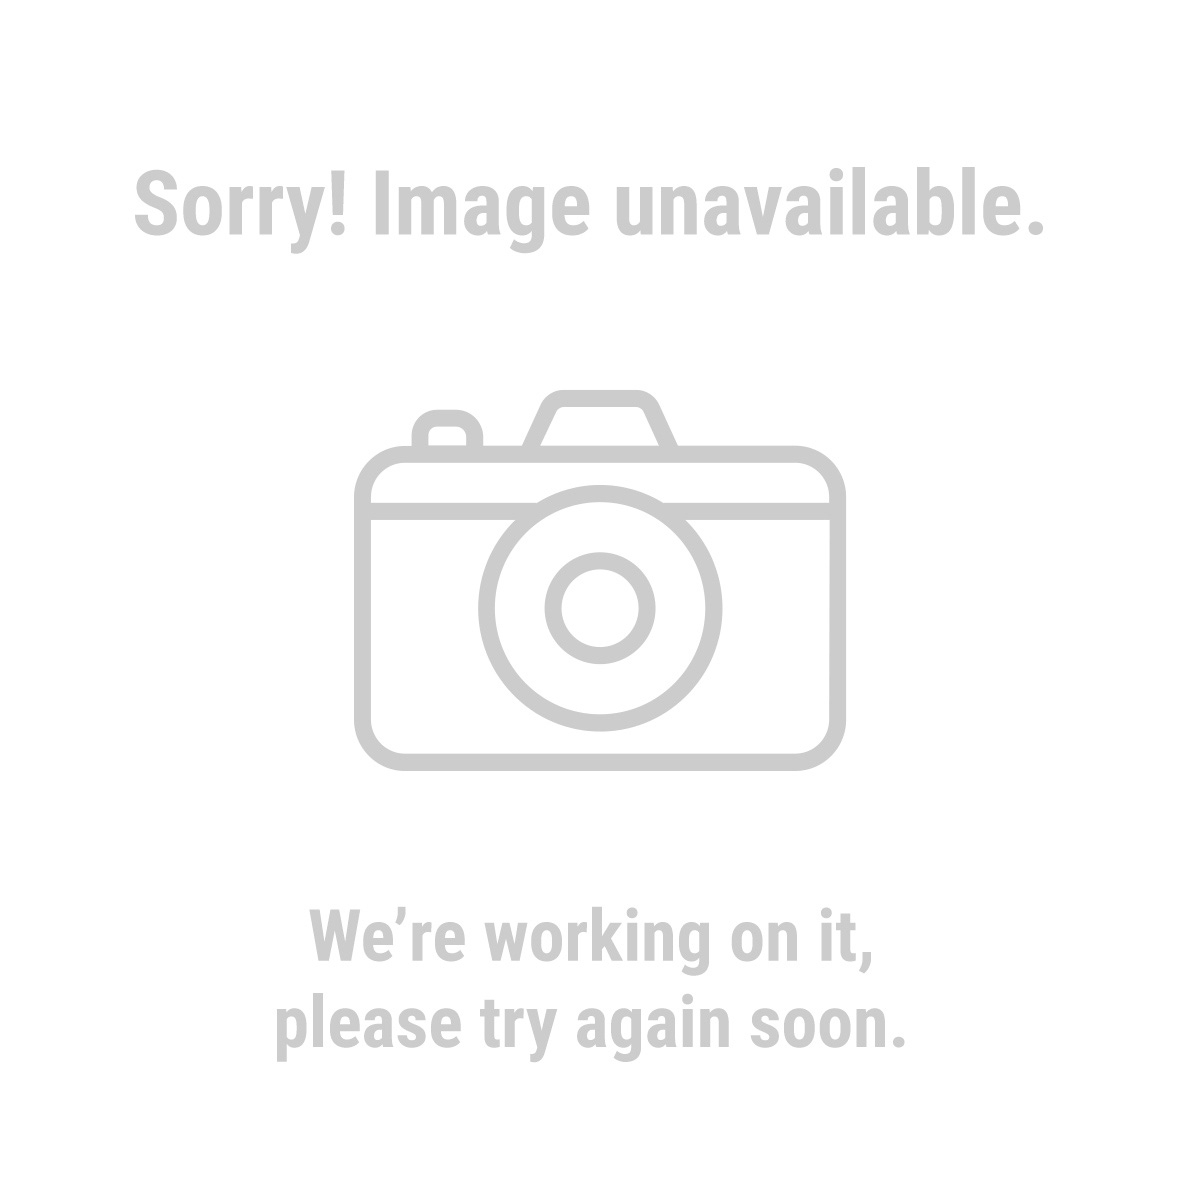 Admiral® 62734 7-1/4 in. 40T Finishing Circular Saw Blade